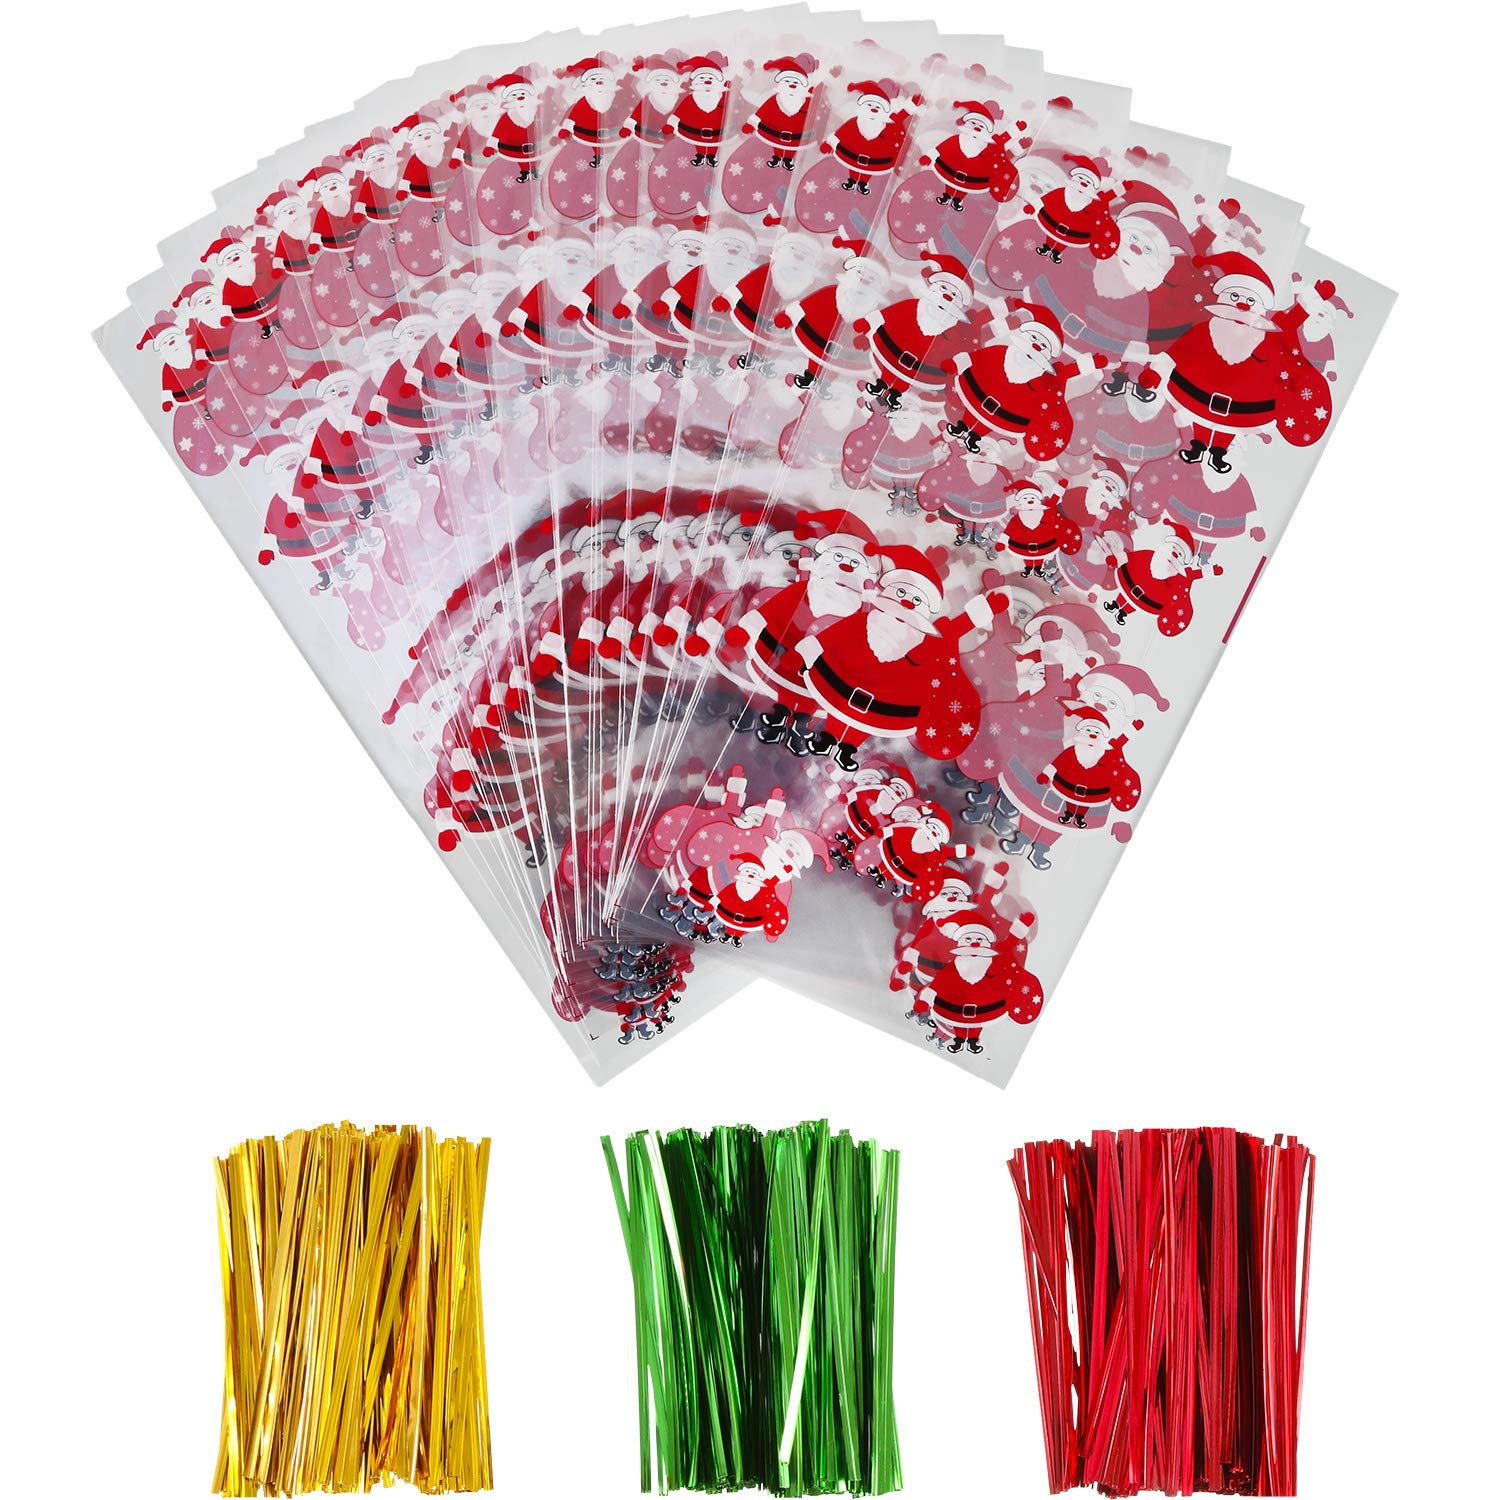 Style 1 100 Pieces Christmas Cellophane Bags Candy Gift Bags Goodies Treat Bags with 150 Pieces Twist Ties for Christmas Party Packaging Supplies